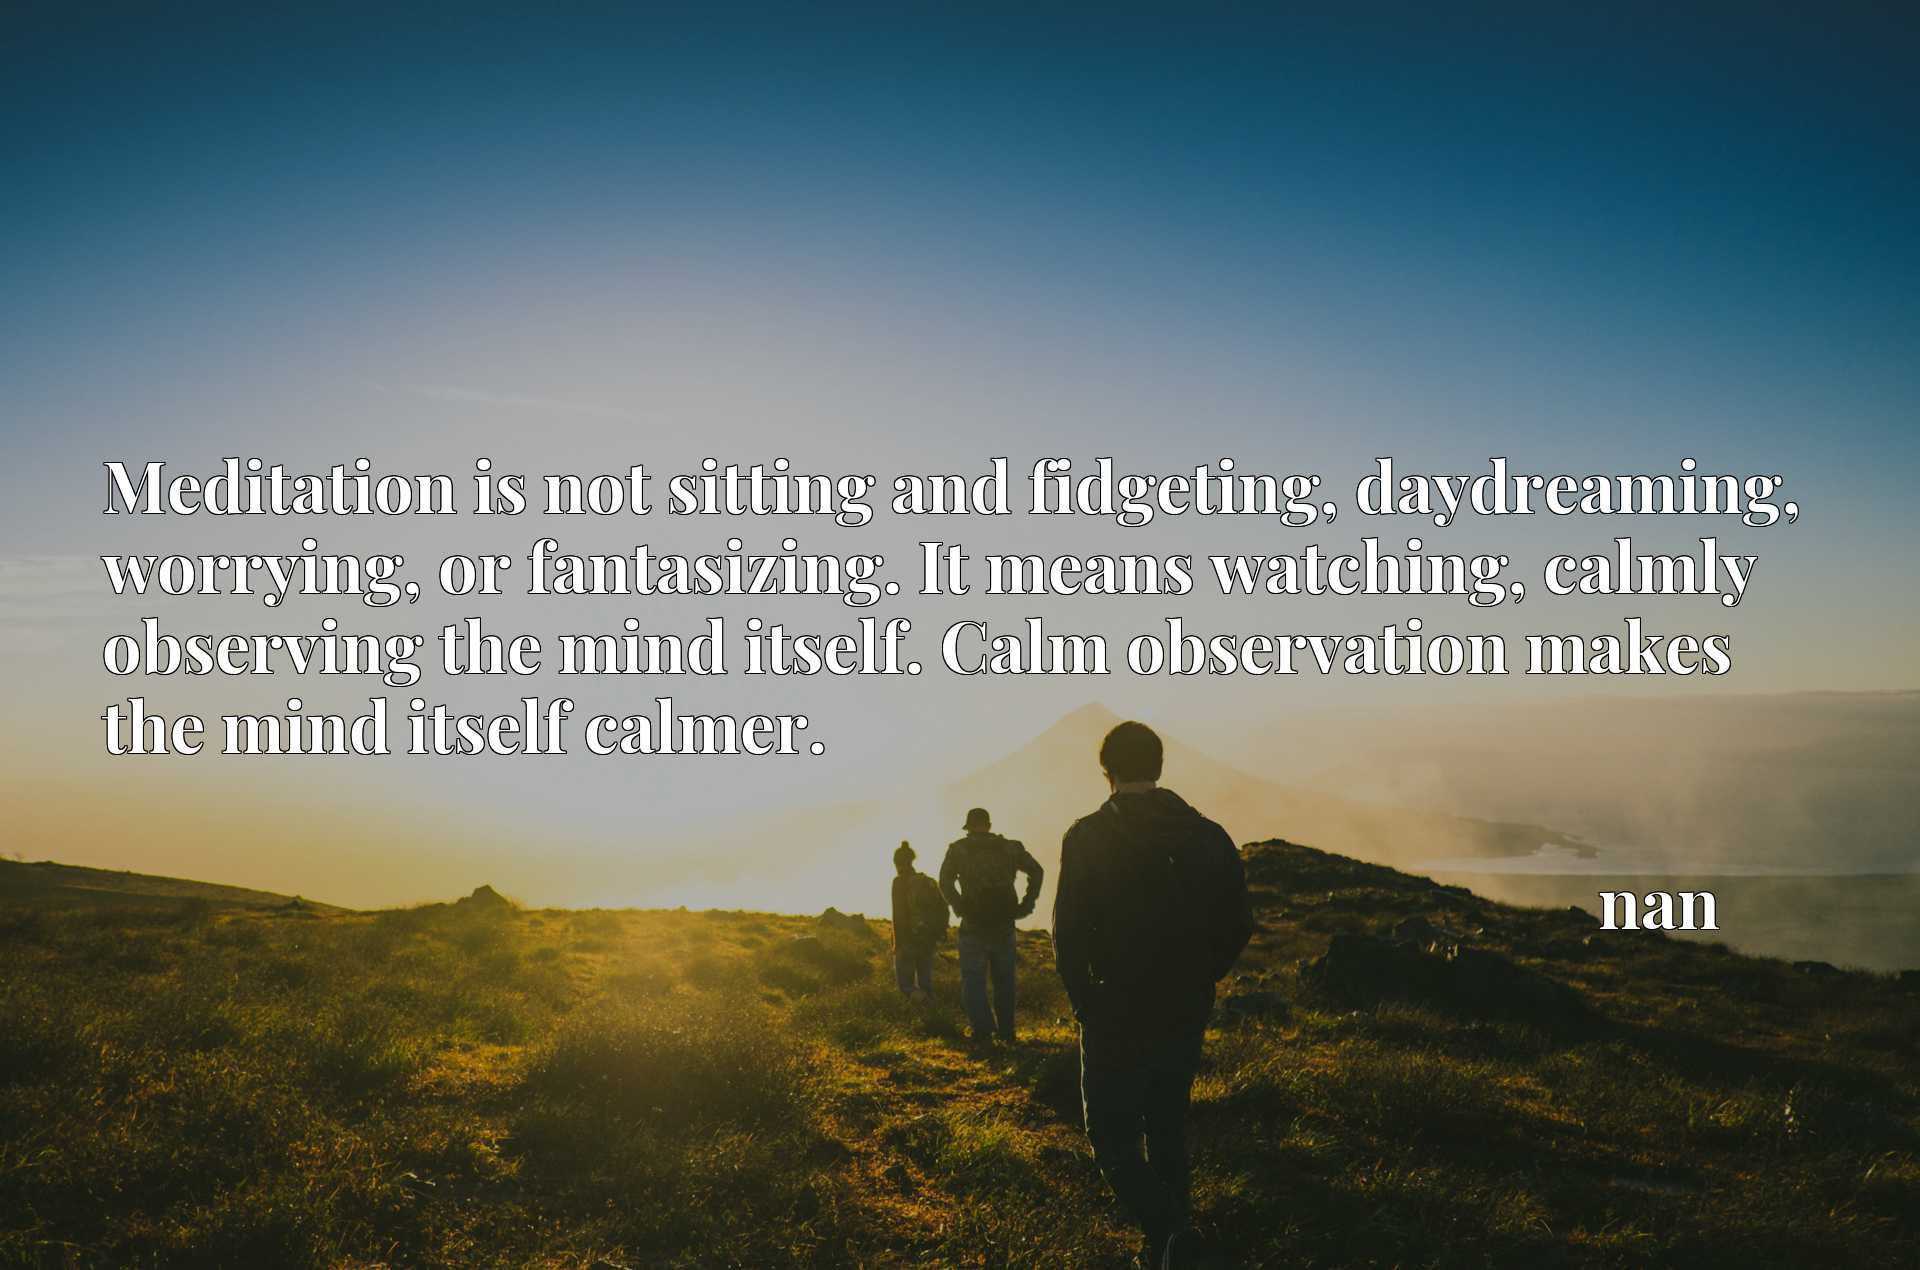 Meditation is not sitting and fidgeting, daydreaming, worrying, or fantasizing. It means watching, calmly observing the mind itself. Calm observation makes the mind itself calmer.